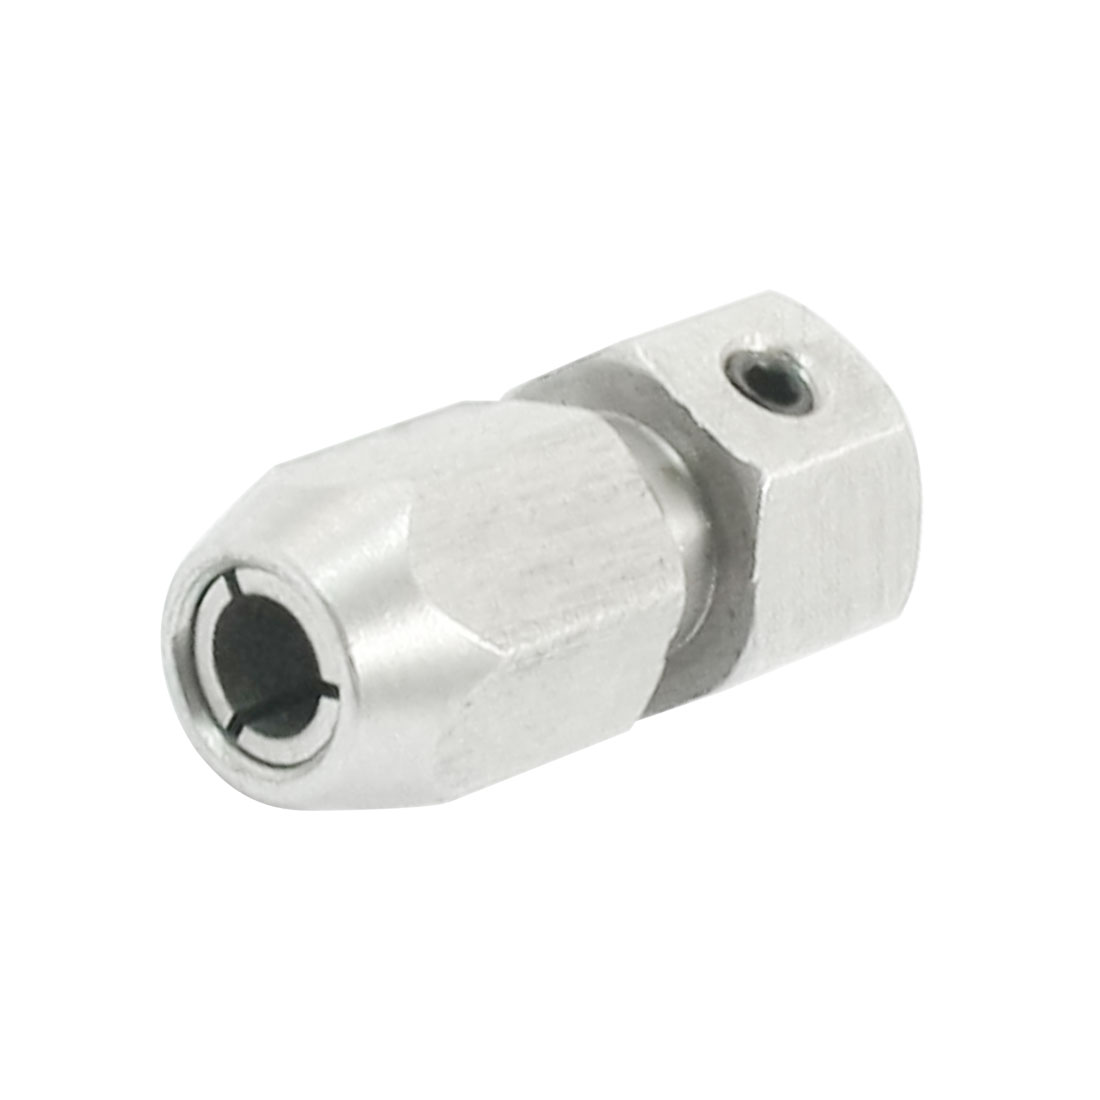 4mm to 4mm Stainless Steel Collet Coupler Shaft for RC Boat Gasoline Engine Clutch